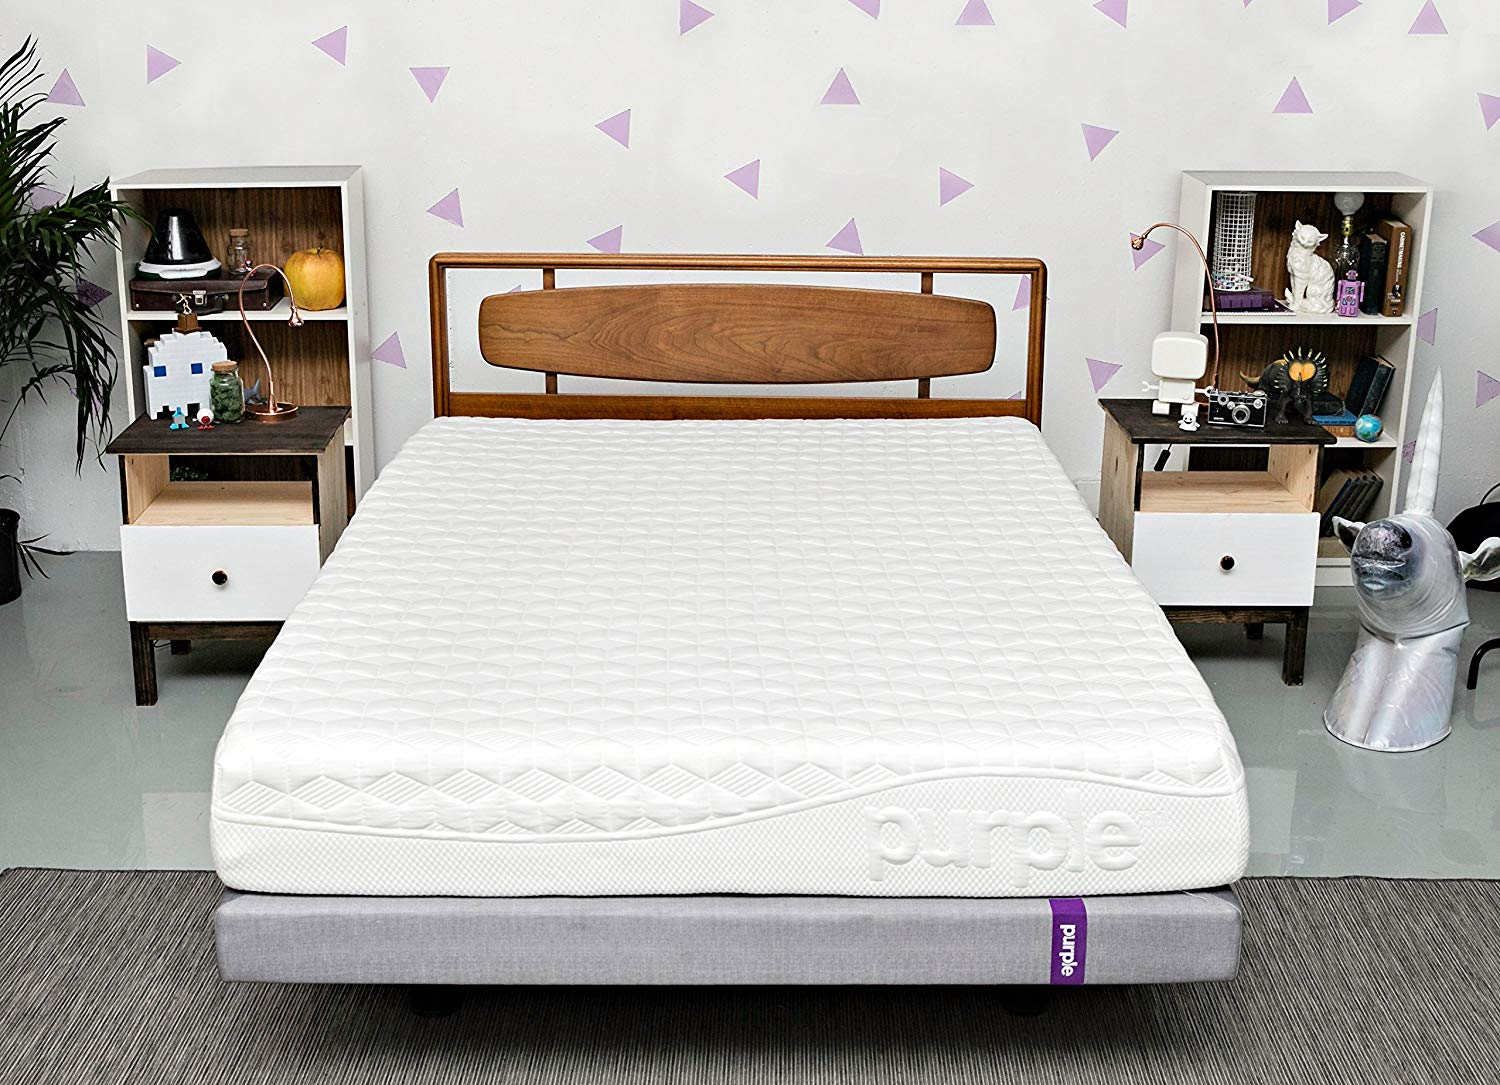 Purple Best Mattresses Under $1000 Review by www.snoremagazine.com